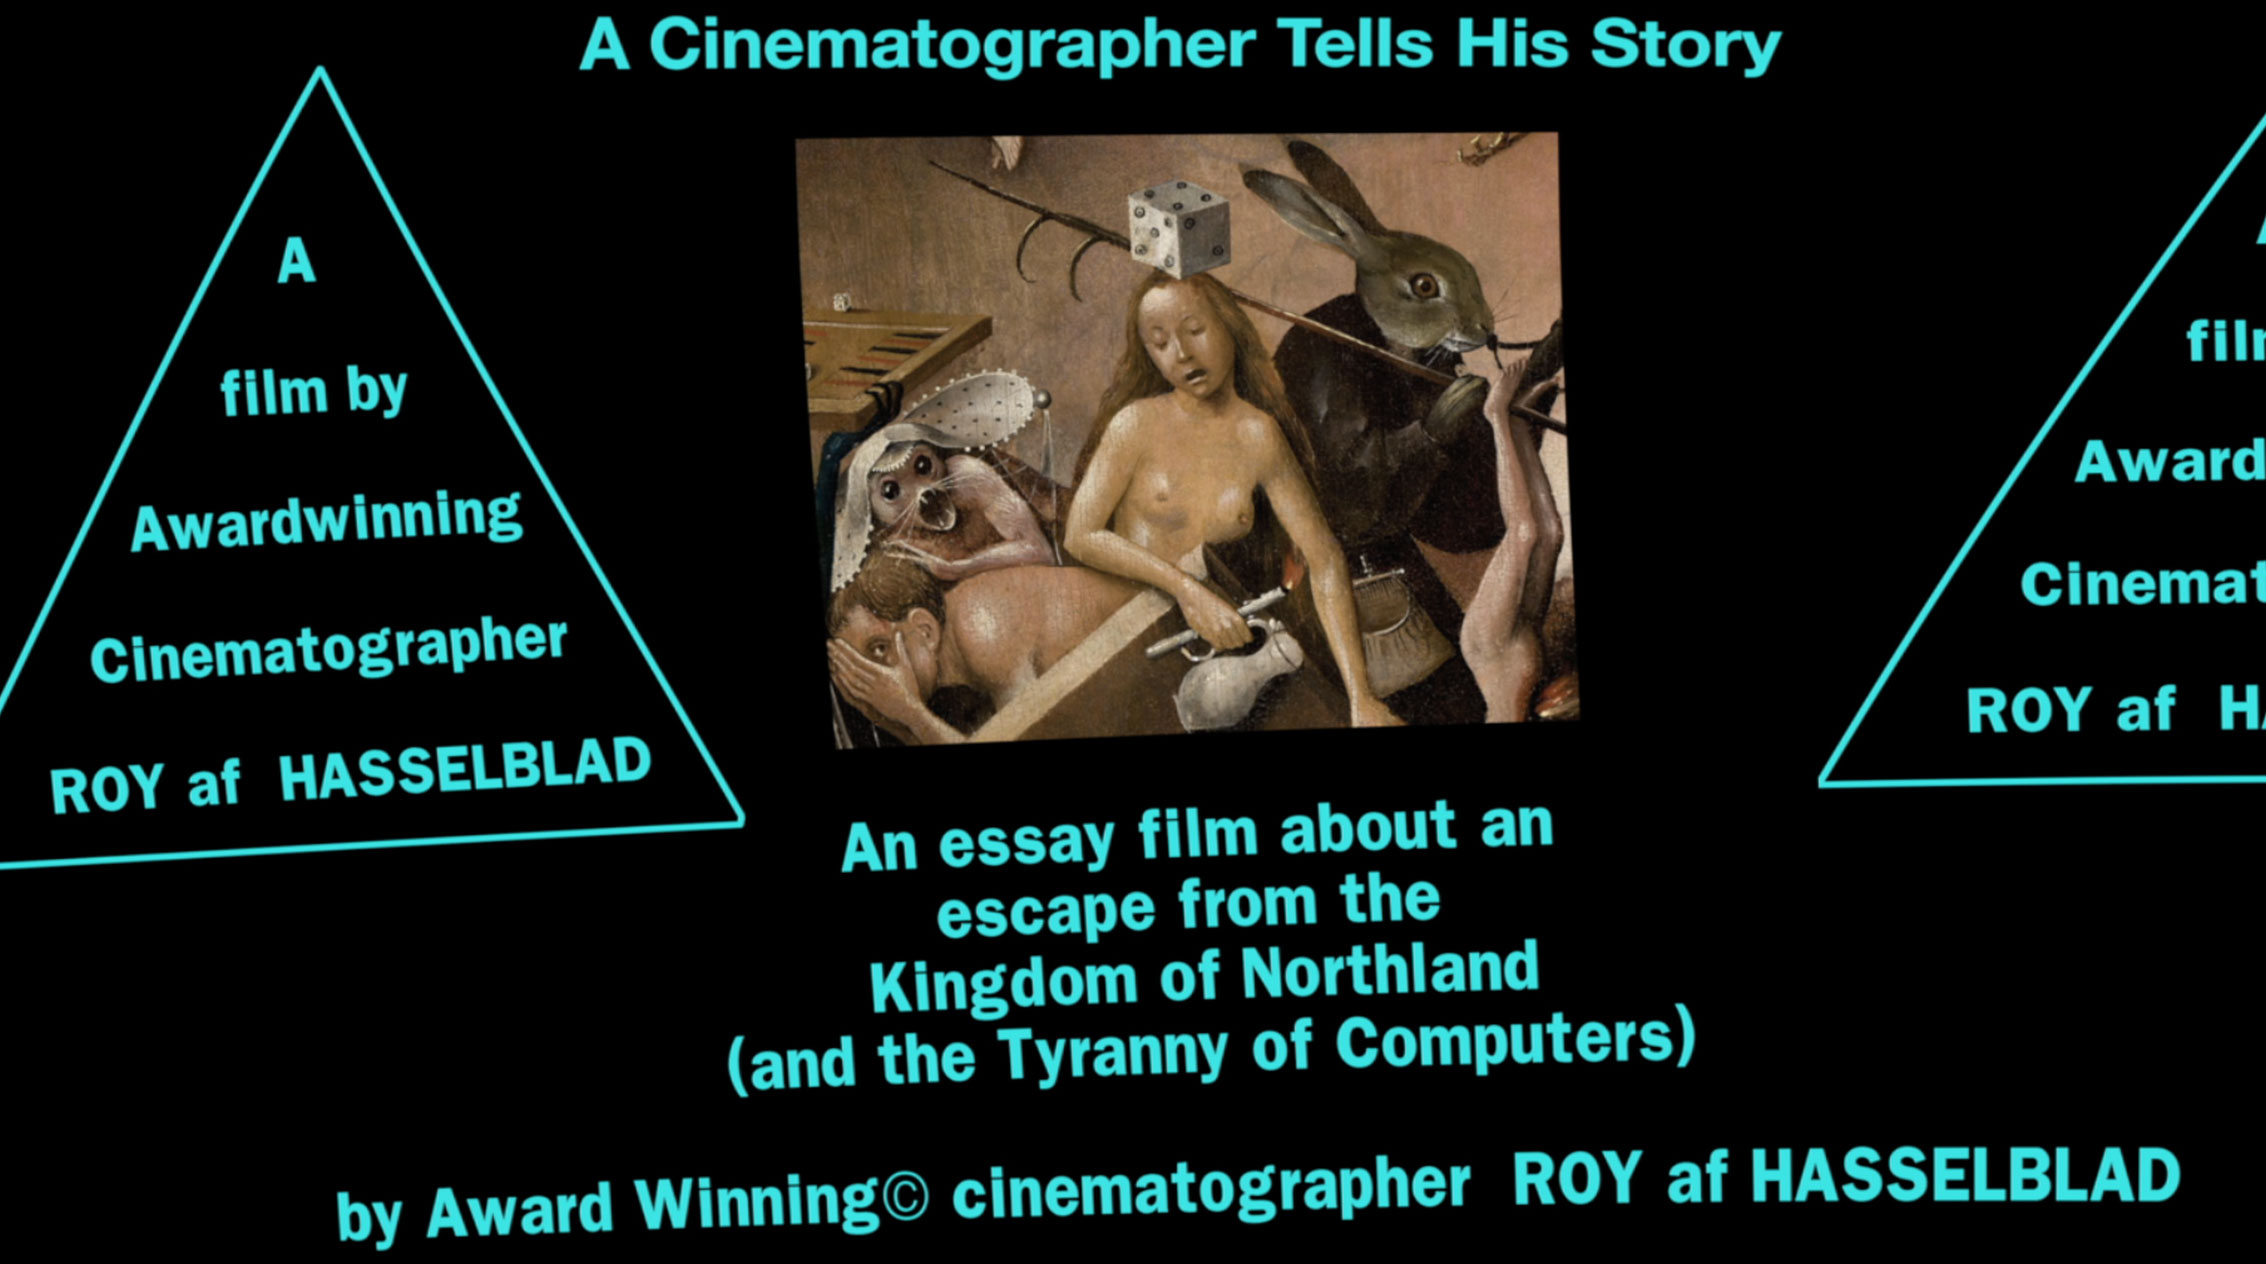 Roy is working on his own film. Here we learn of his reactionary understanding of cinema, misguided by nostalgia, misogyny and privilege.